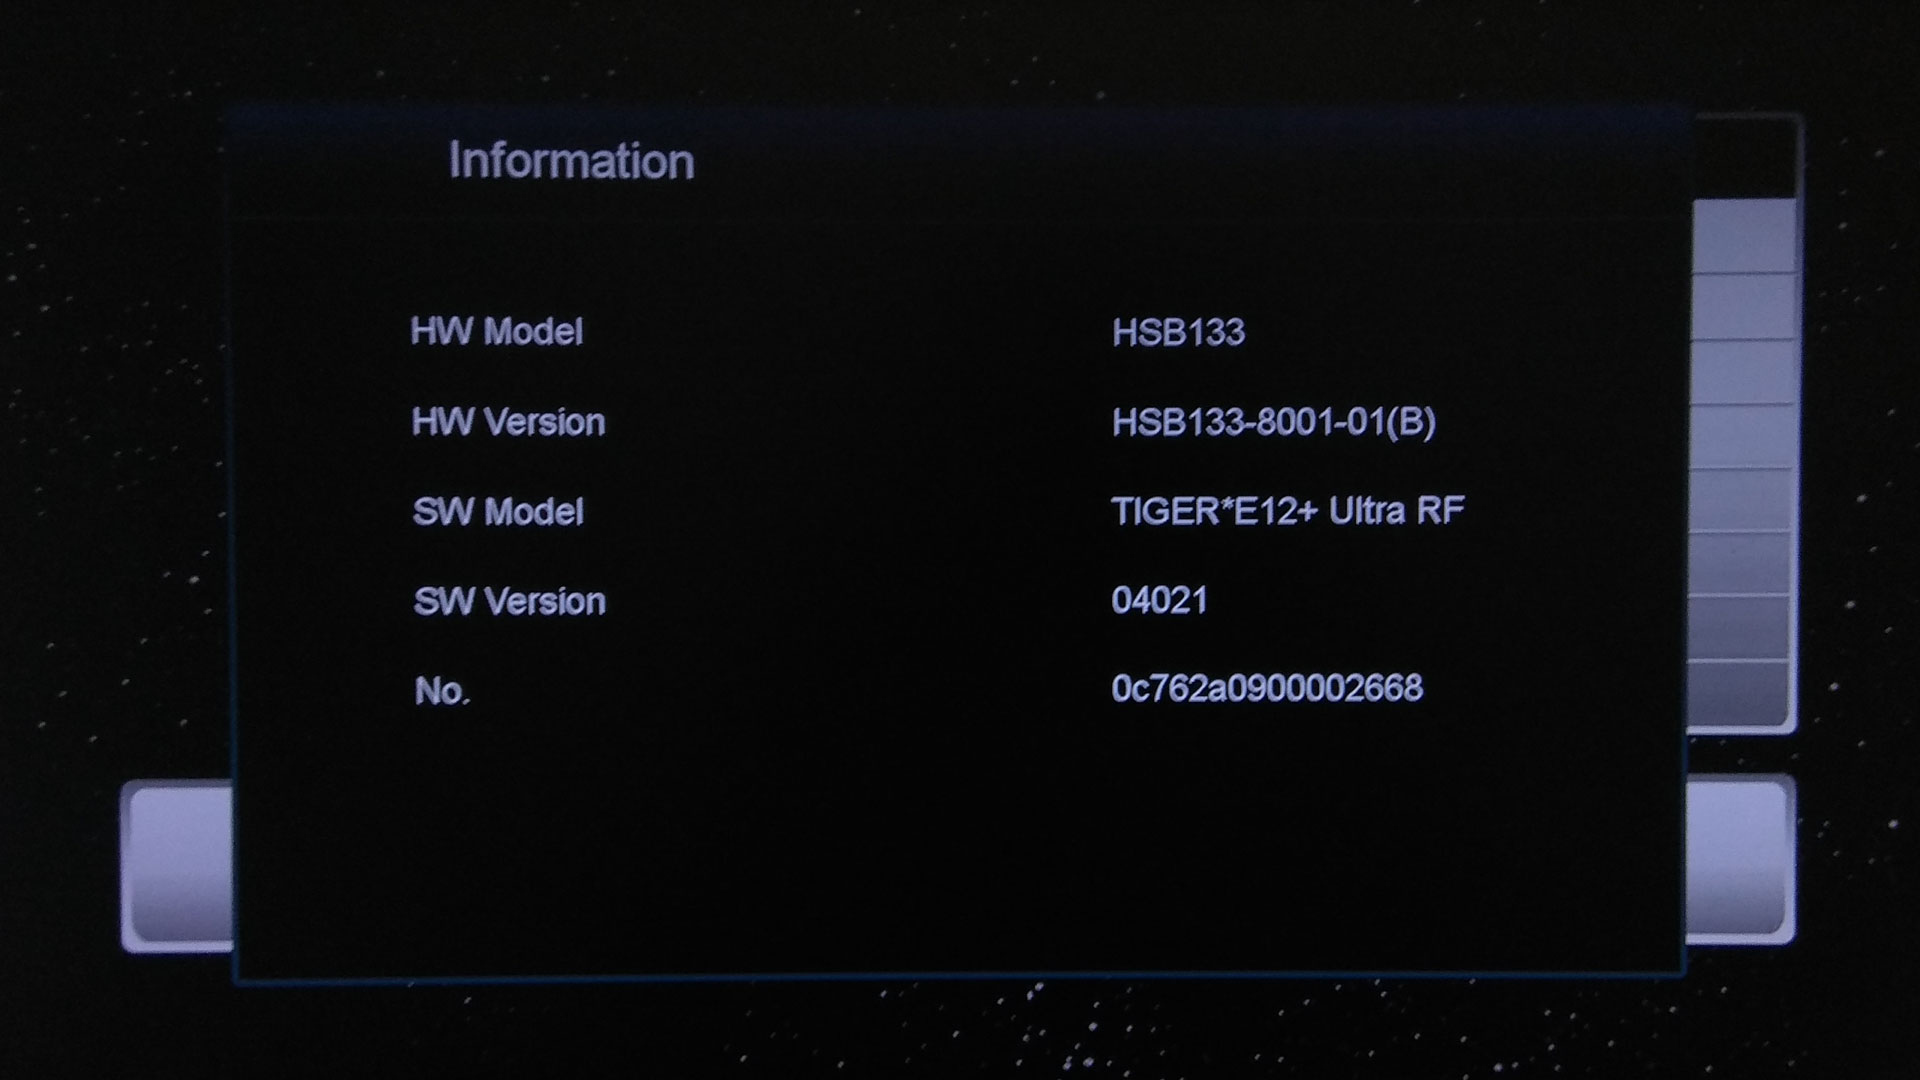 Software Tiger Star E12 Plus Ultra RF New Update Firmware